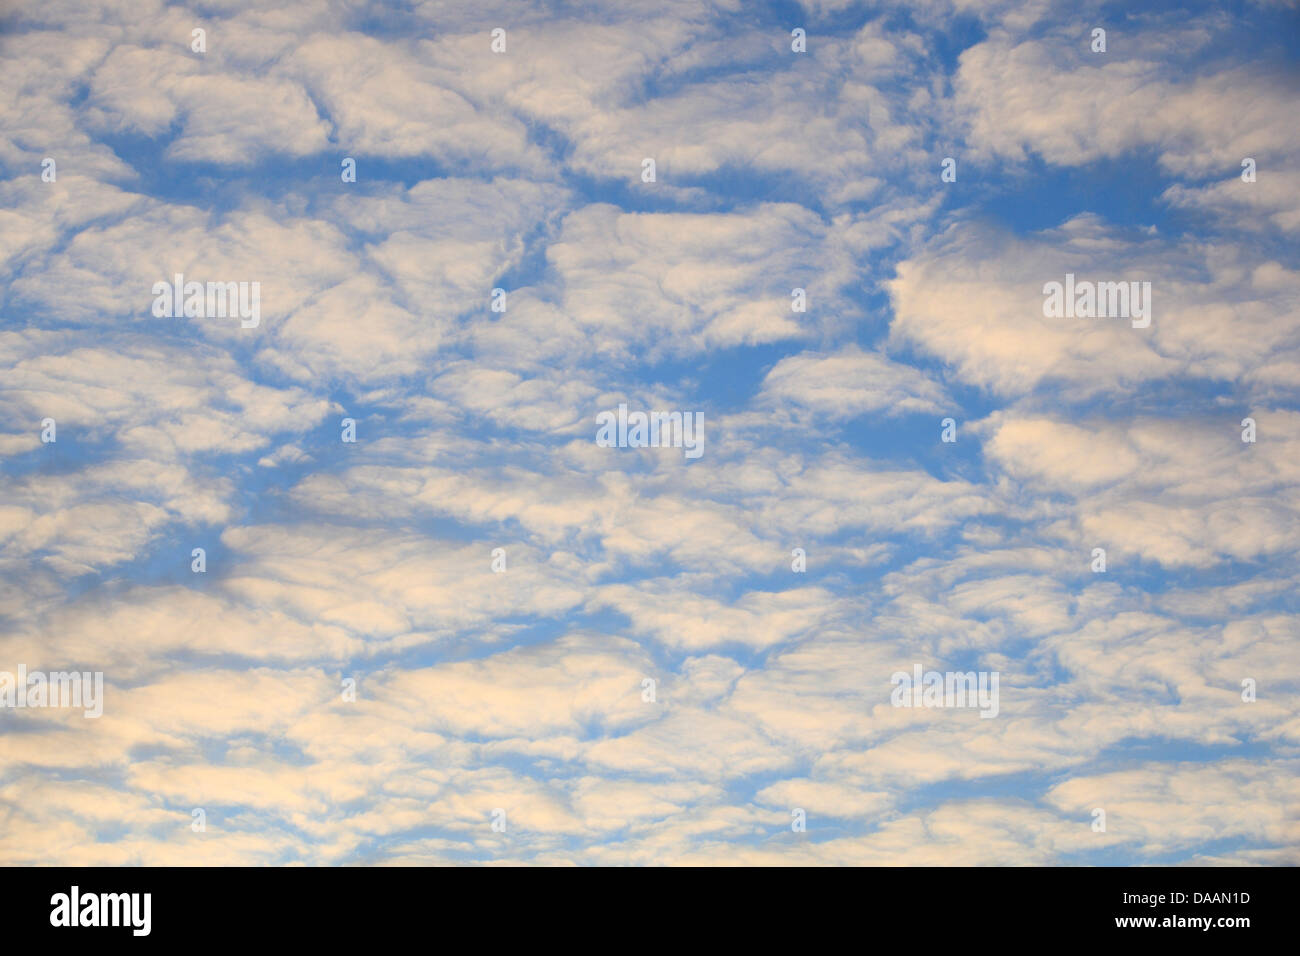 Sky, air, width, weather, clouds, cloud formation blue, blue sky, white, wind, move - Stock Image